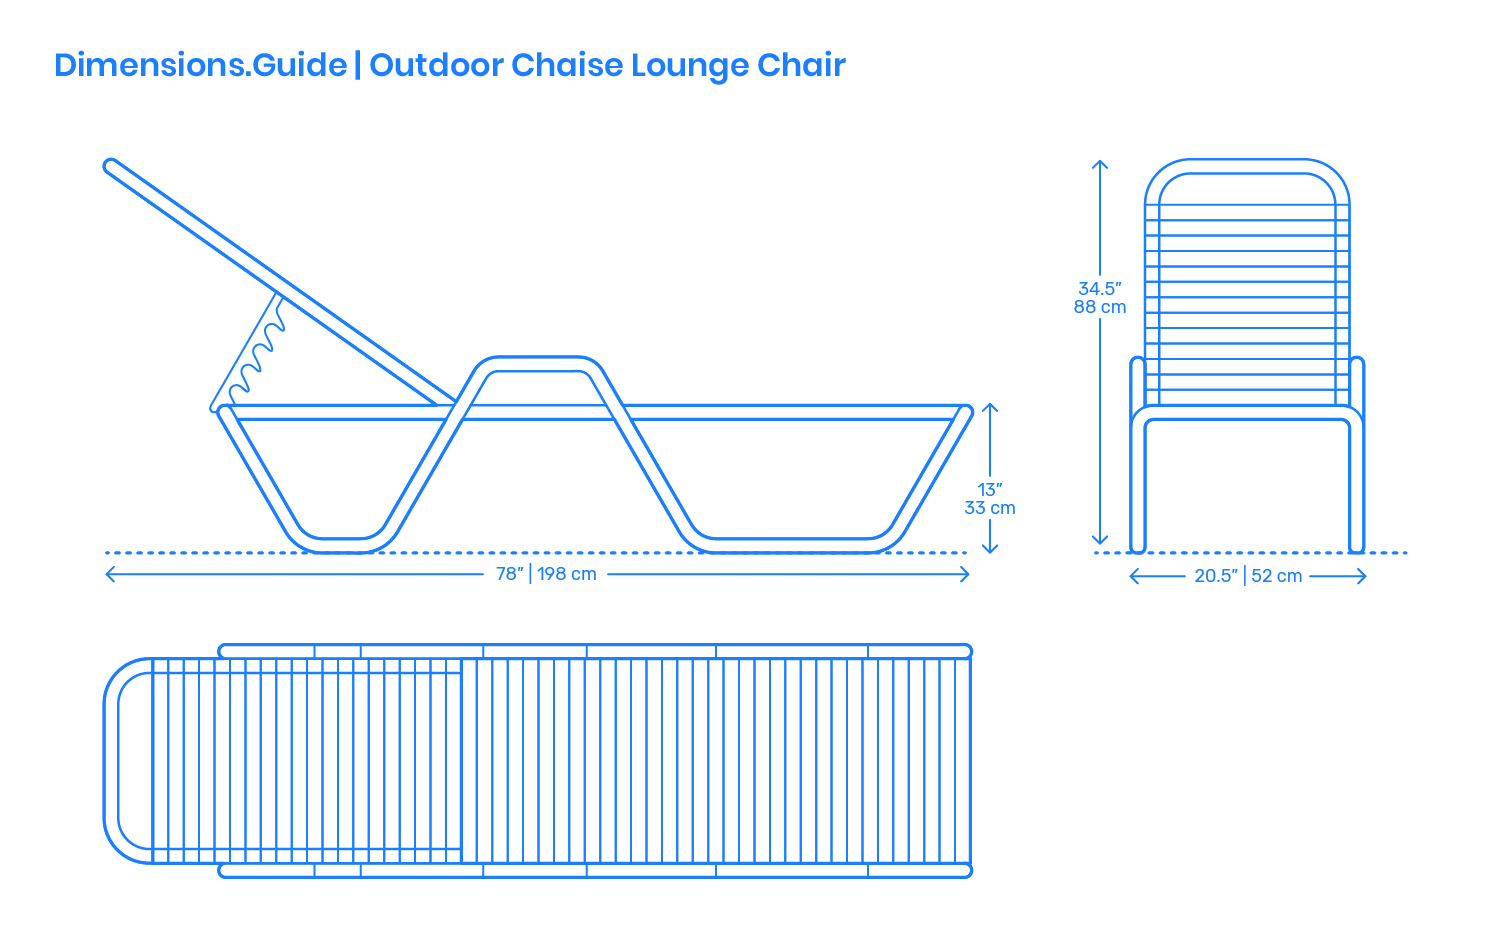 Outdoor Chaise Lounge Chair Dimensions  Drawings